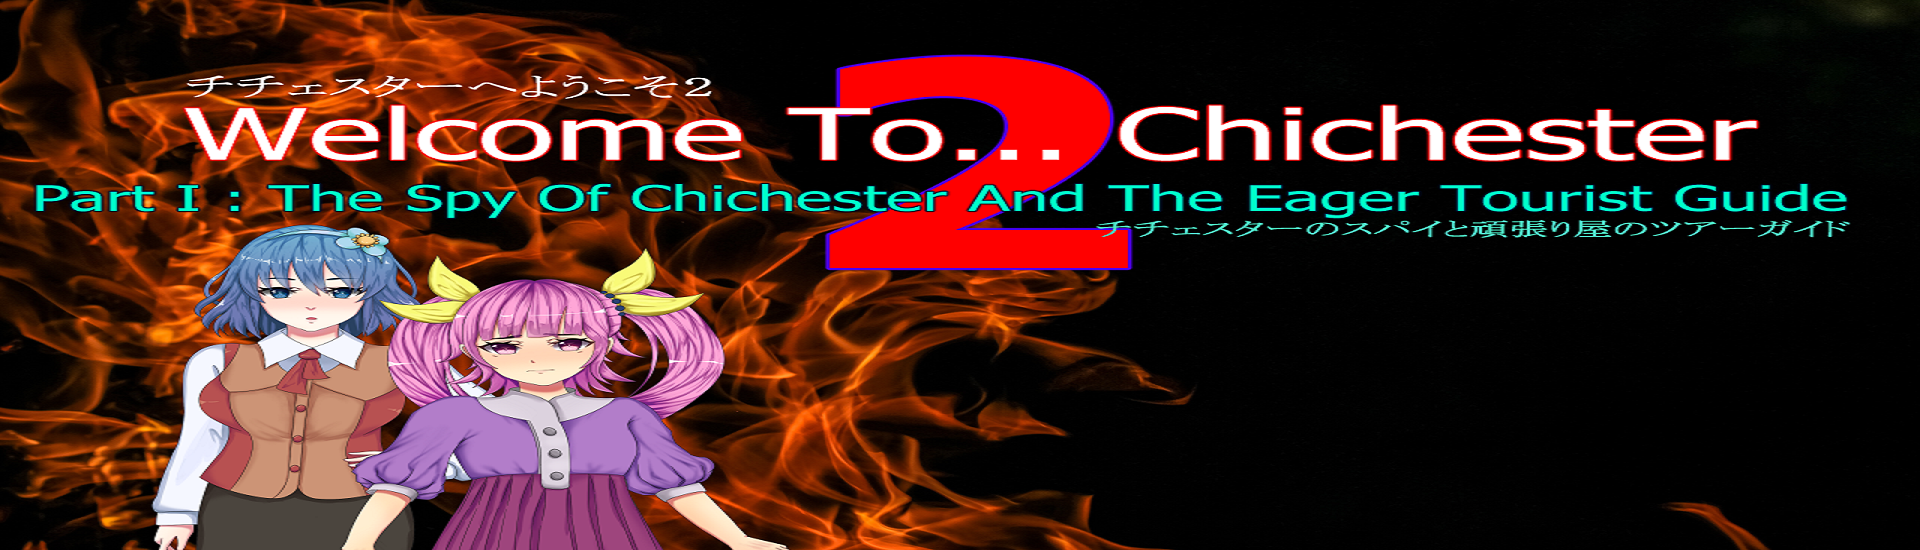 Welcome To... Chichester 2 - Part I : The Spy Of Chichester And The Eager Tourist Guide cover